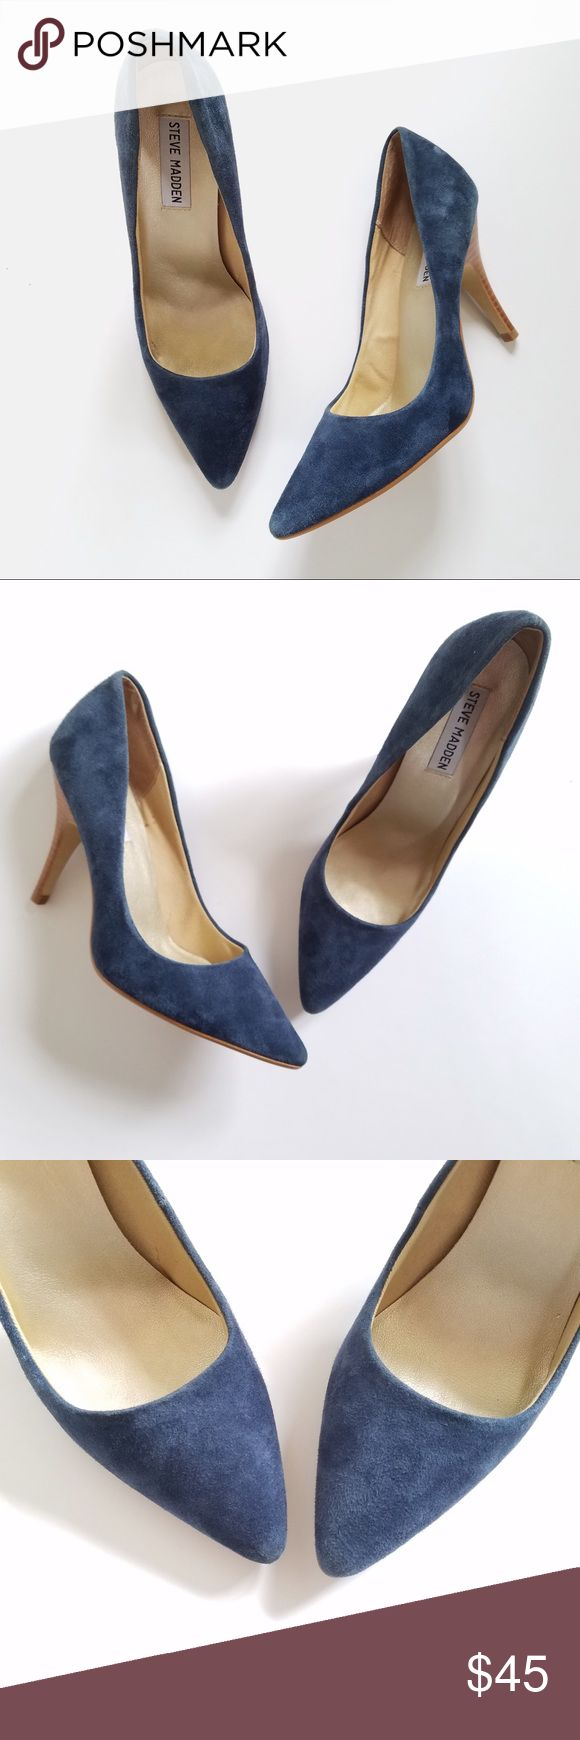 "Steve Madden Blue Suede Pumps Steve Madden Blue Suede 'Carmila' Pumps. Size 8. Excellent, Like New Condition! Light wear on bottoms, as shown. Approximate Heel Height: 4"". All Reasonable Offers Accepted. No Trades! Bundles: 20% OFF 2 or More! Steve Madden Shoes Heels"